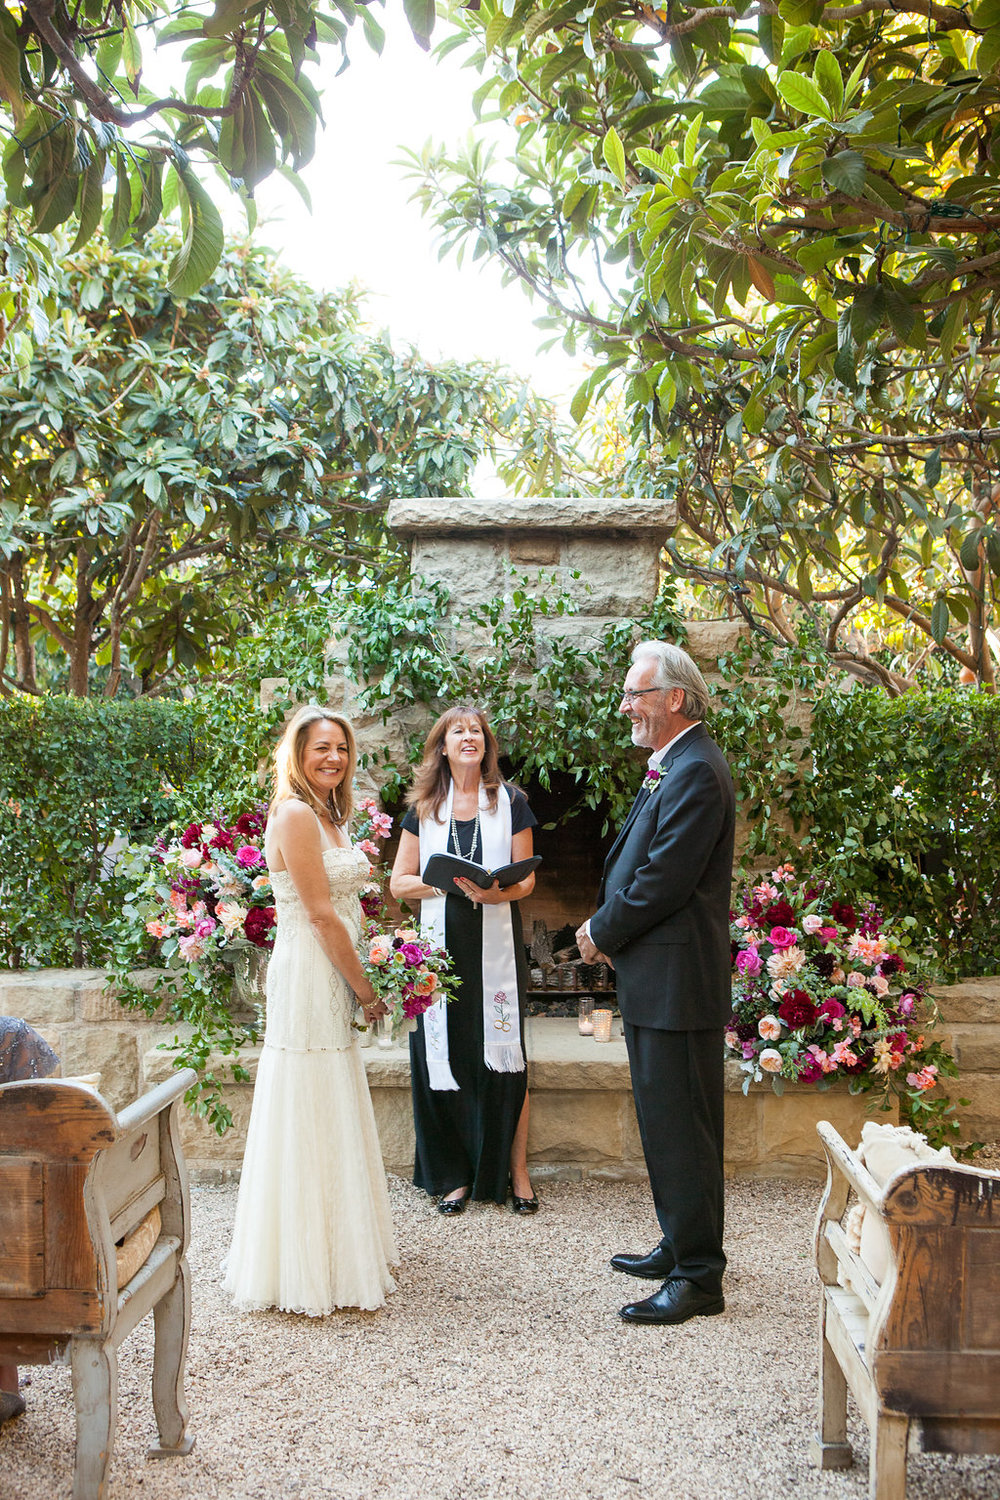 Barbara Mousouris Wedding Officiate San Ysidro Ranch Santa Barbara Wedding Style Planning